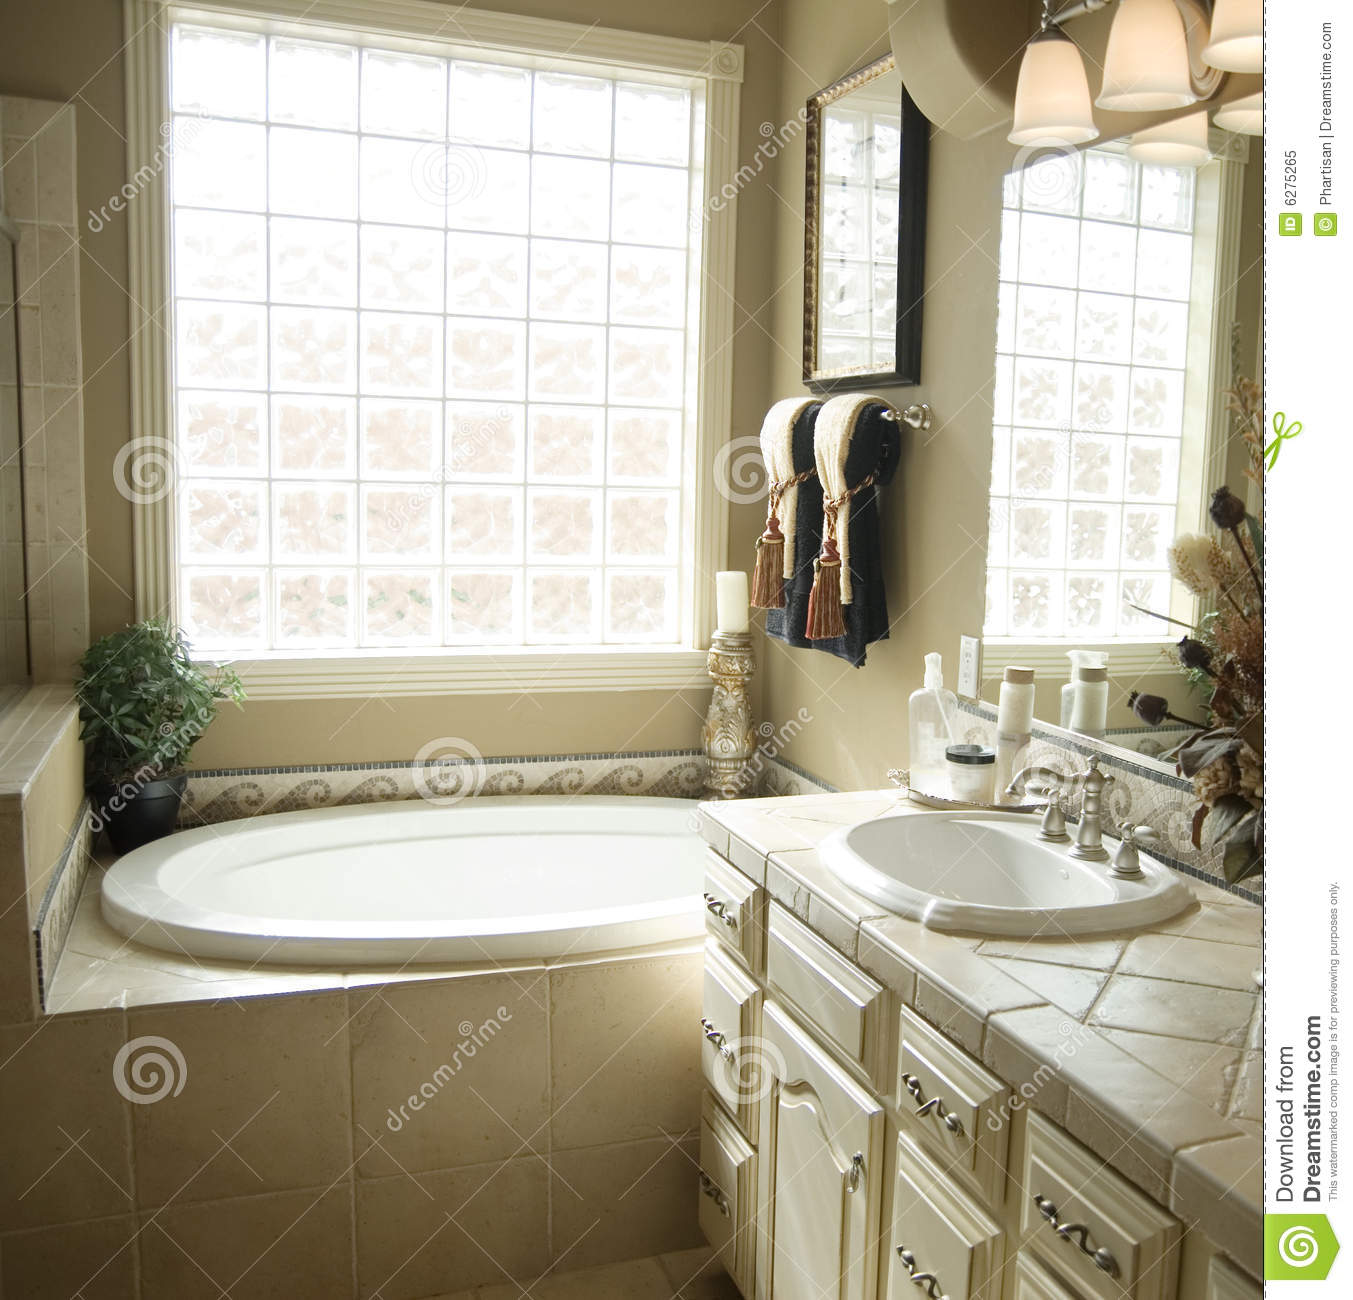 Beautiful bathroom interior design royalty free stock for Beautiful bathroom designs